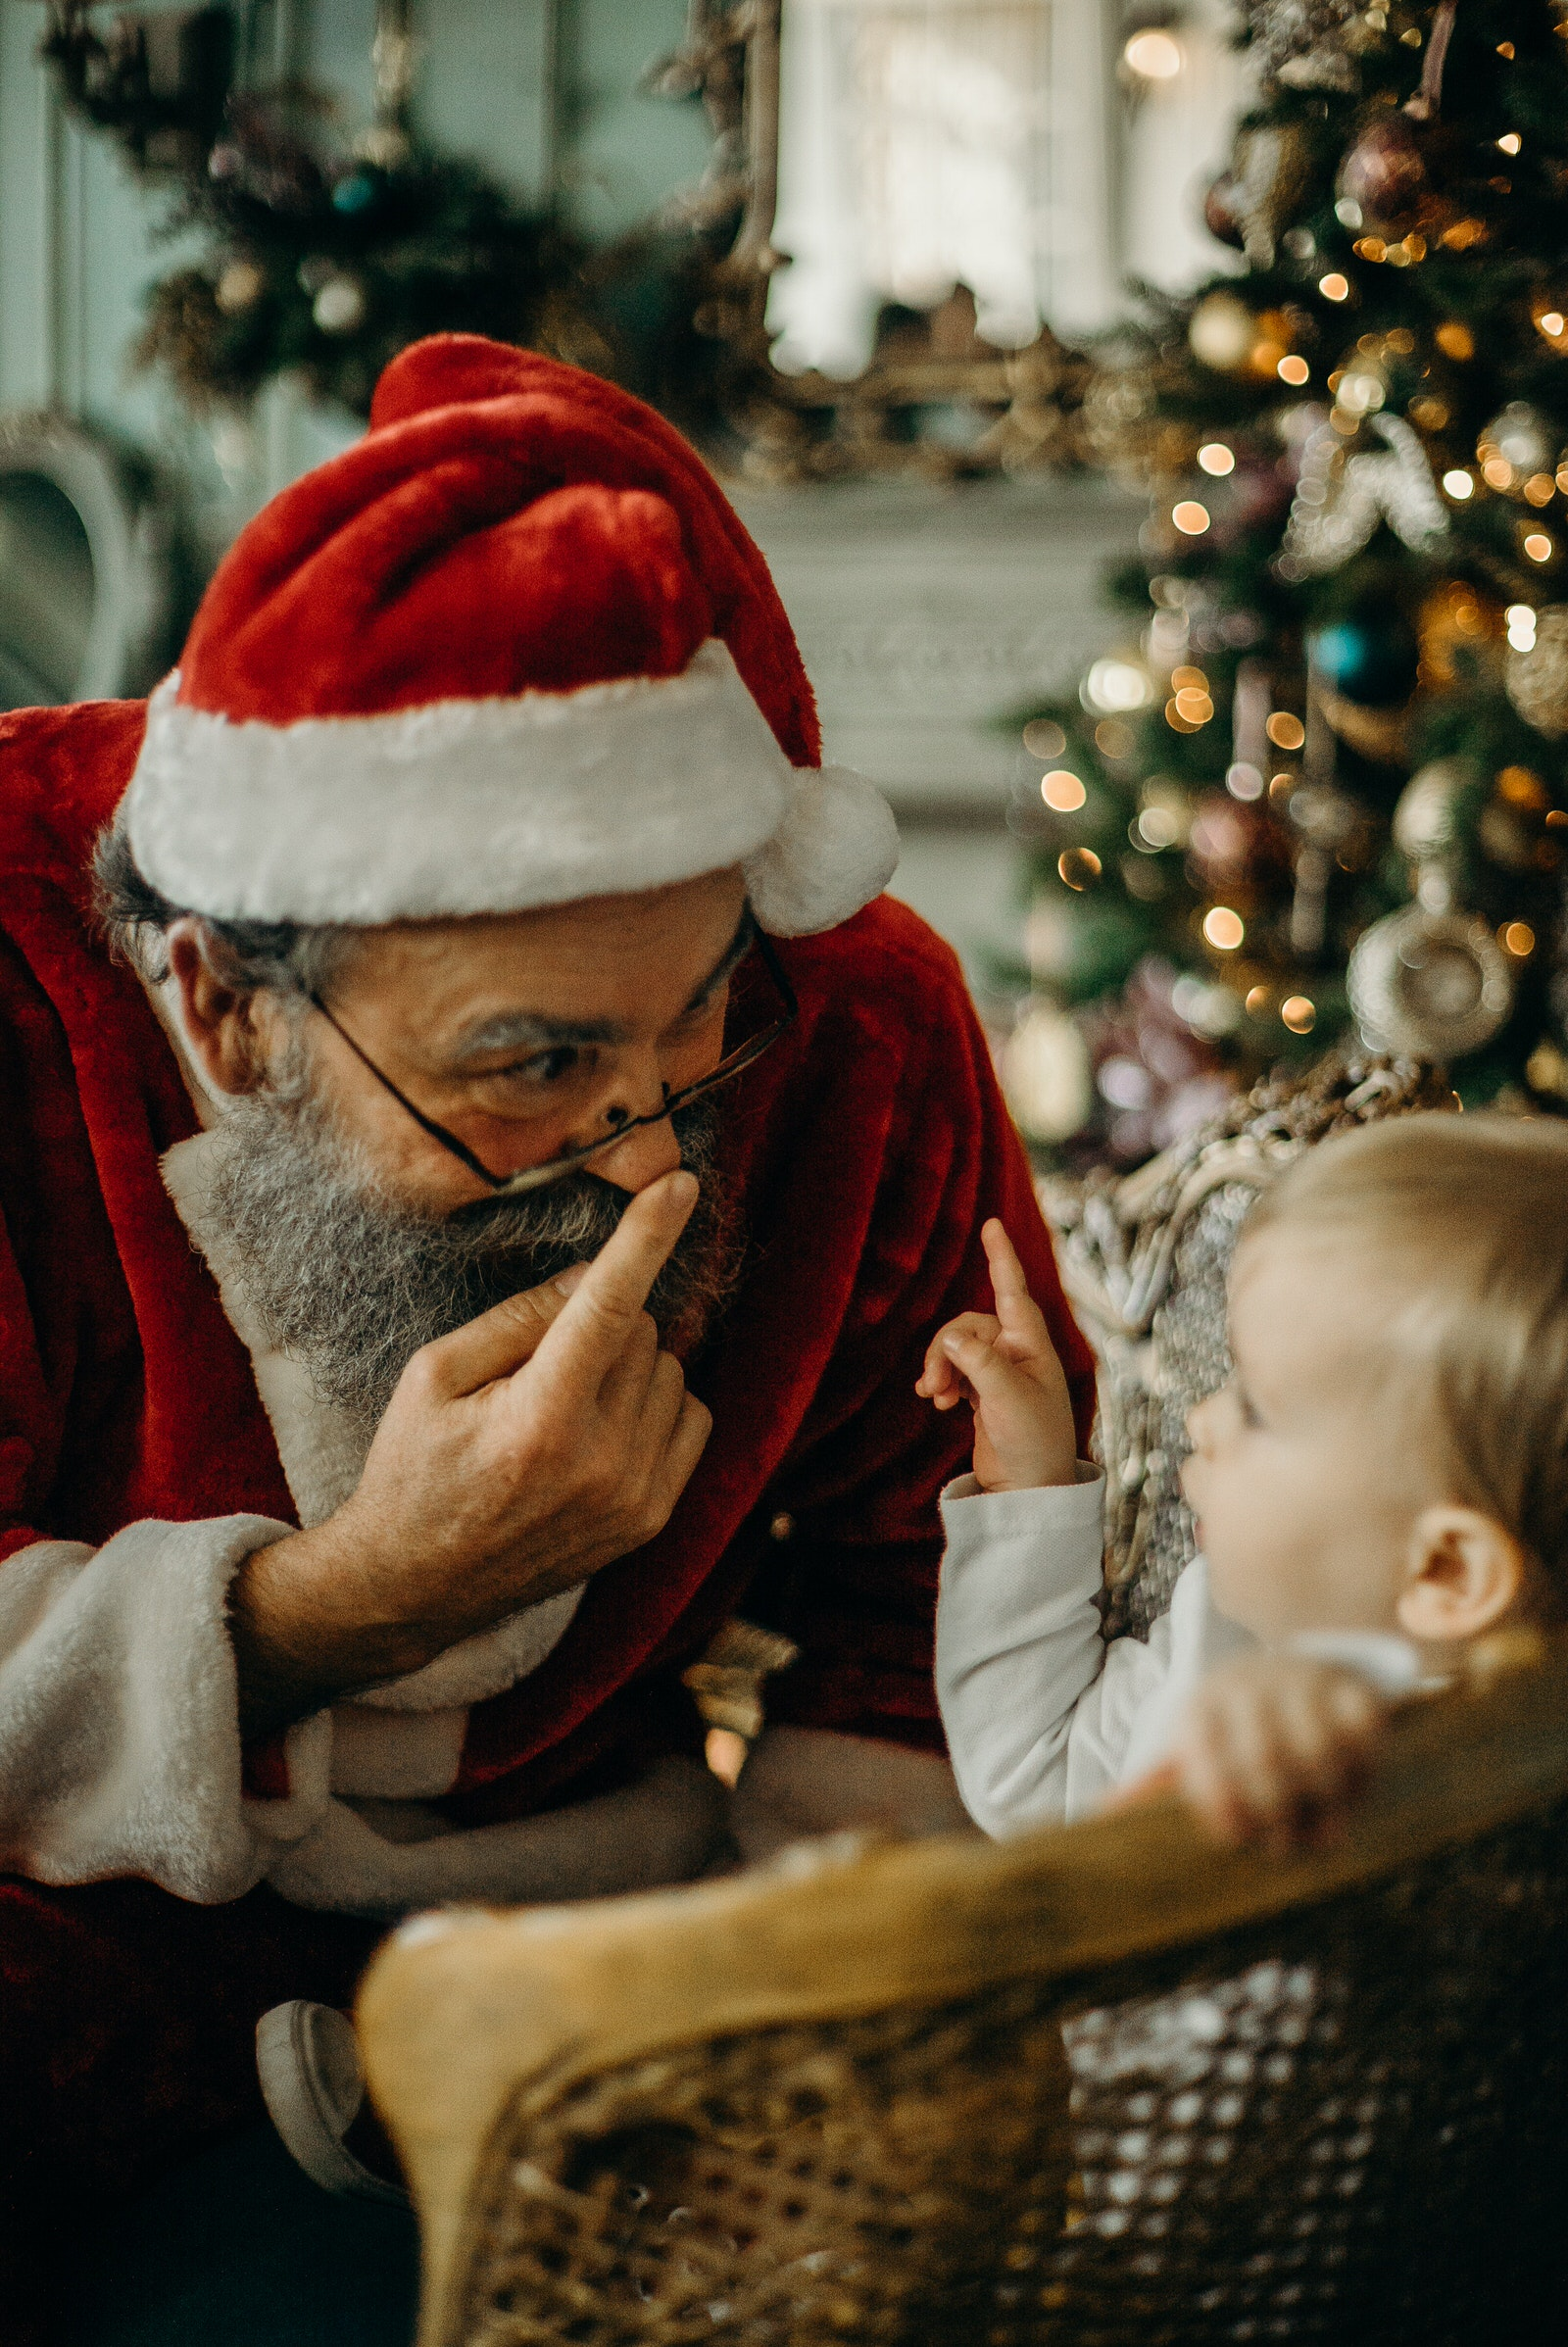 Santa Claus and Child Photo